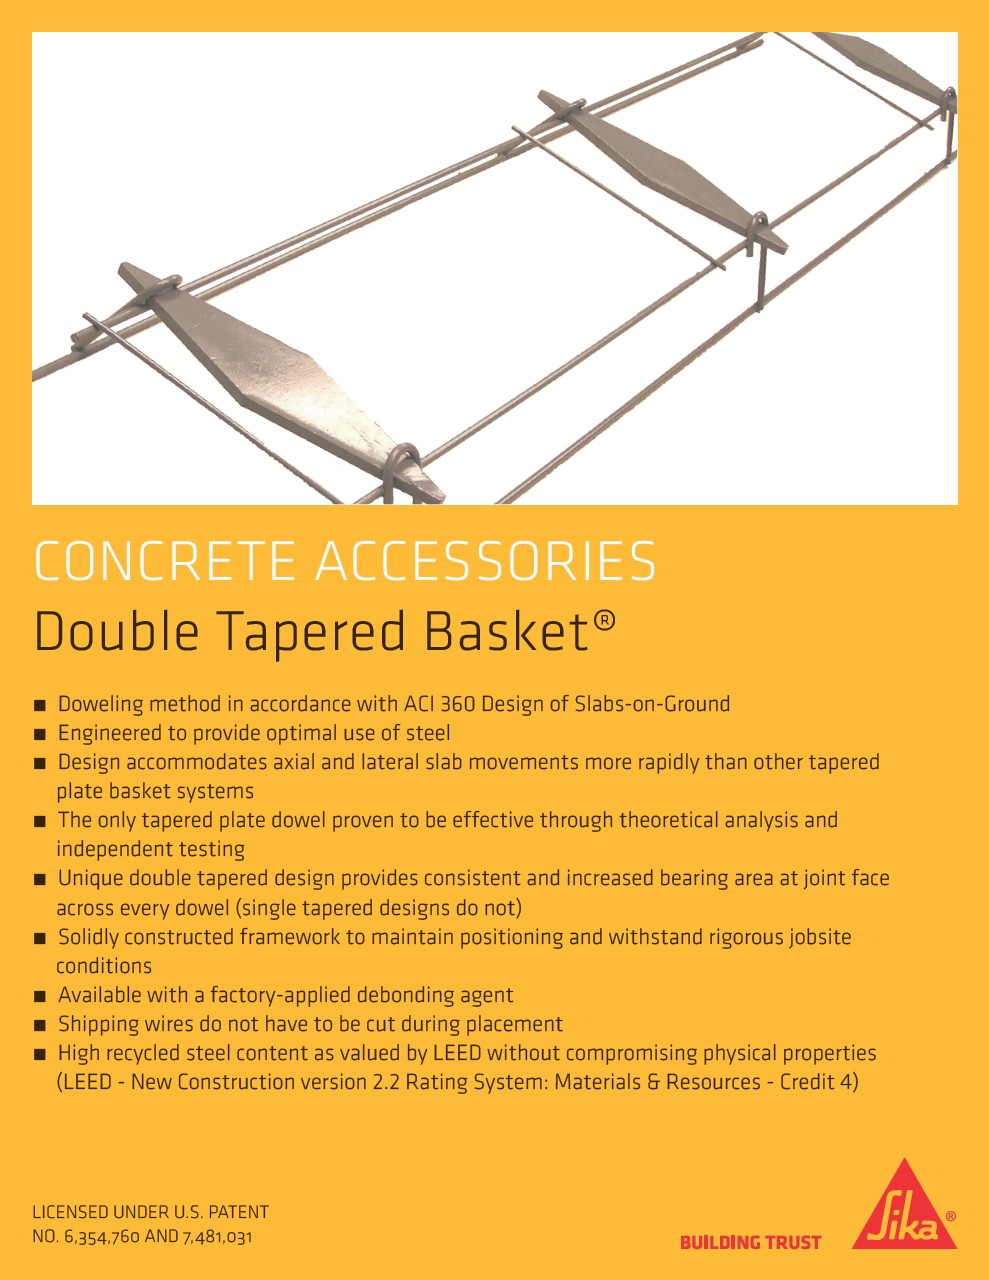 Sika Double Tapered Basket Sell Sheet